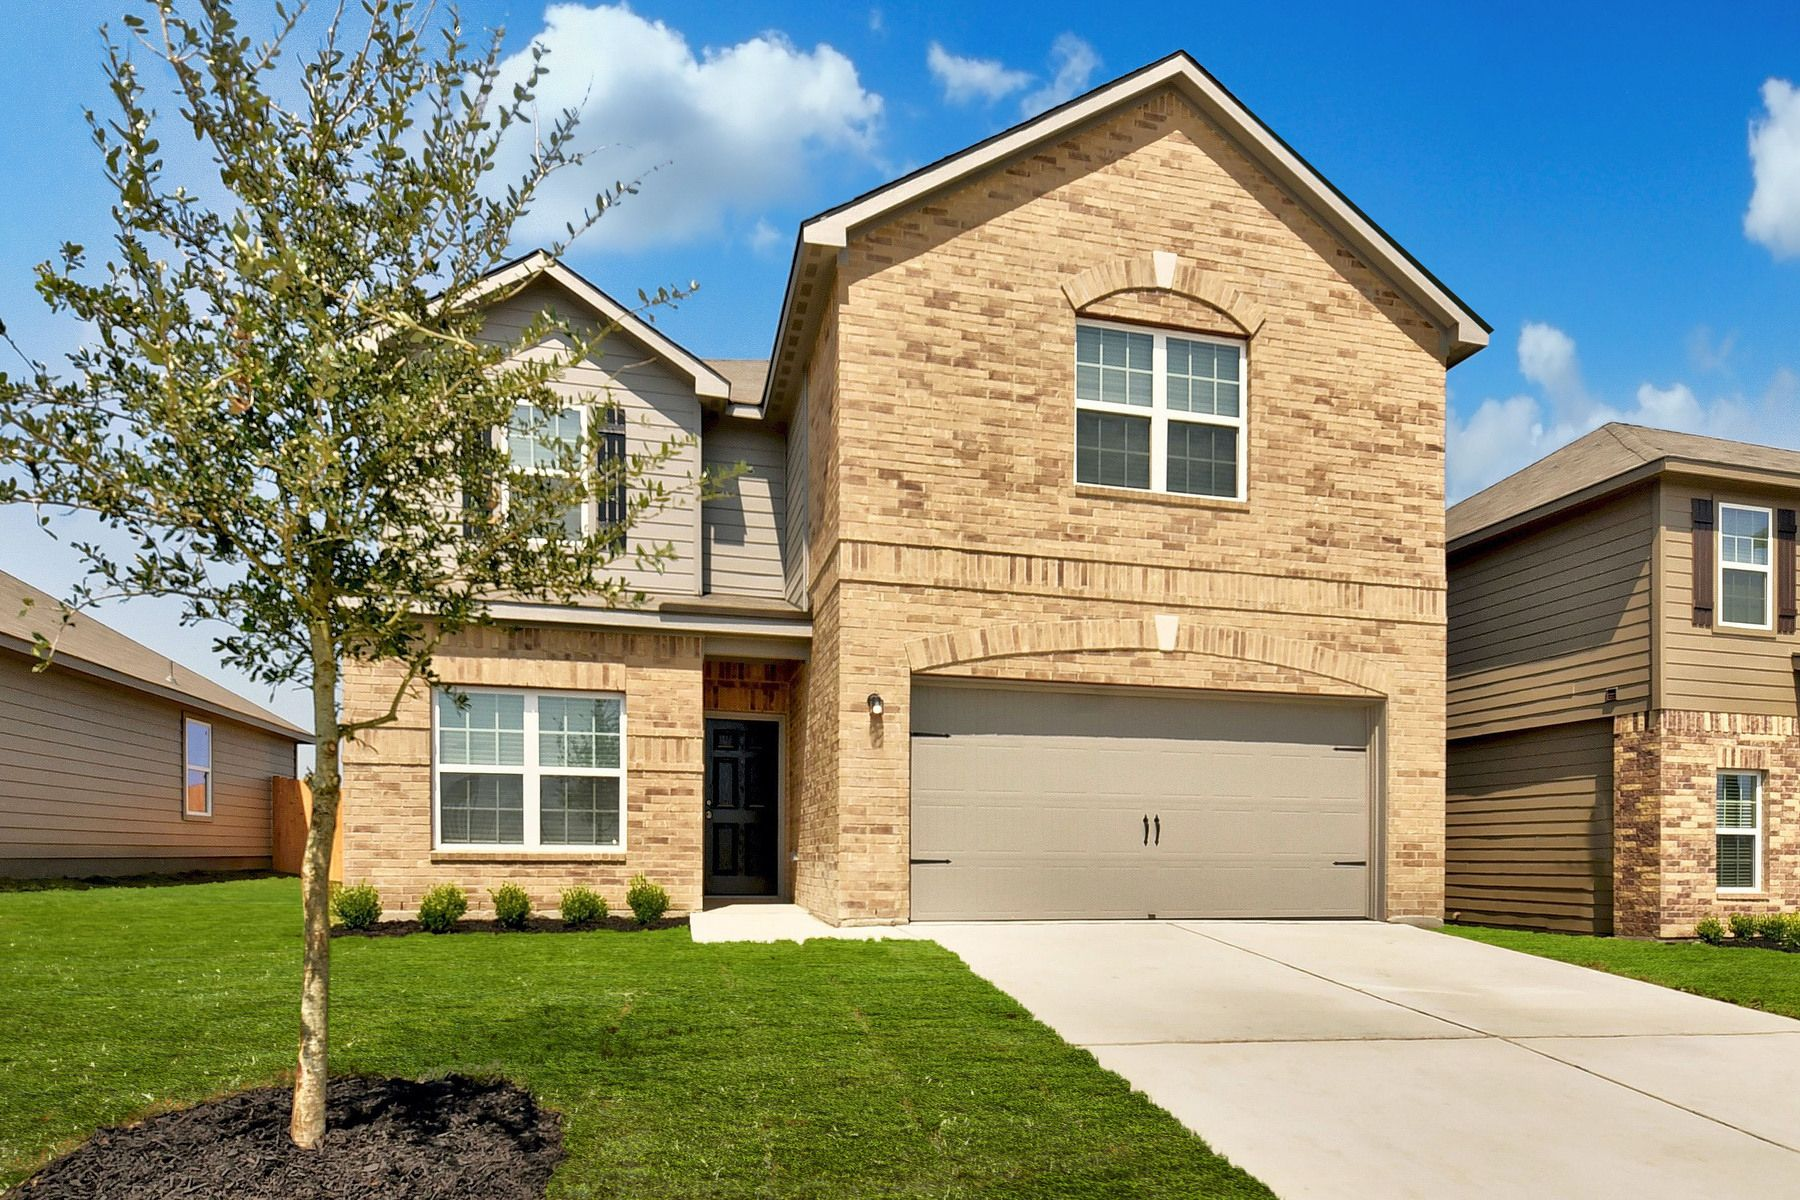 The Travis by LGI Homes:The Travis has incredible curb appeal.